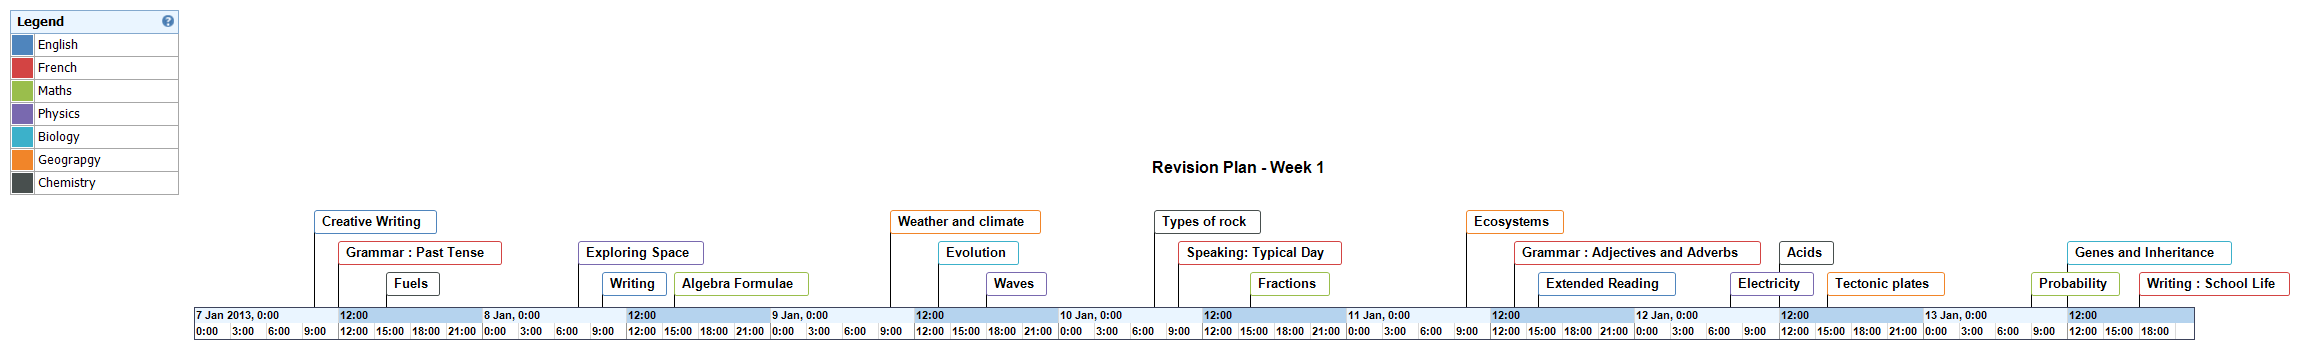 Revision Plan - Week 1 Timeline